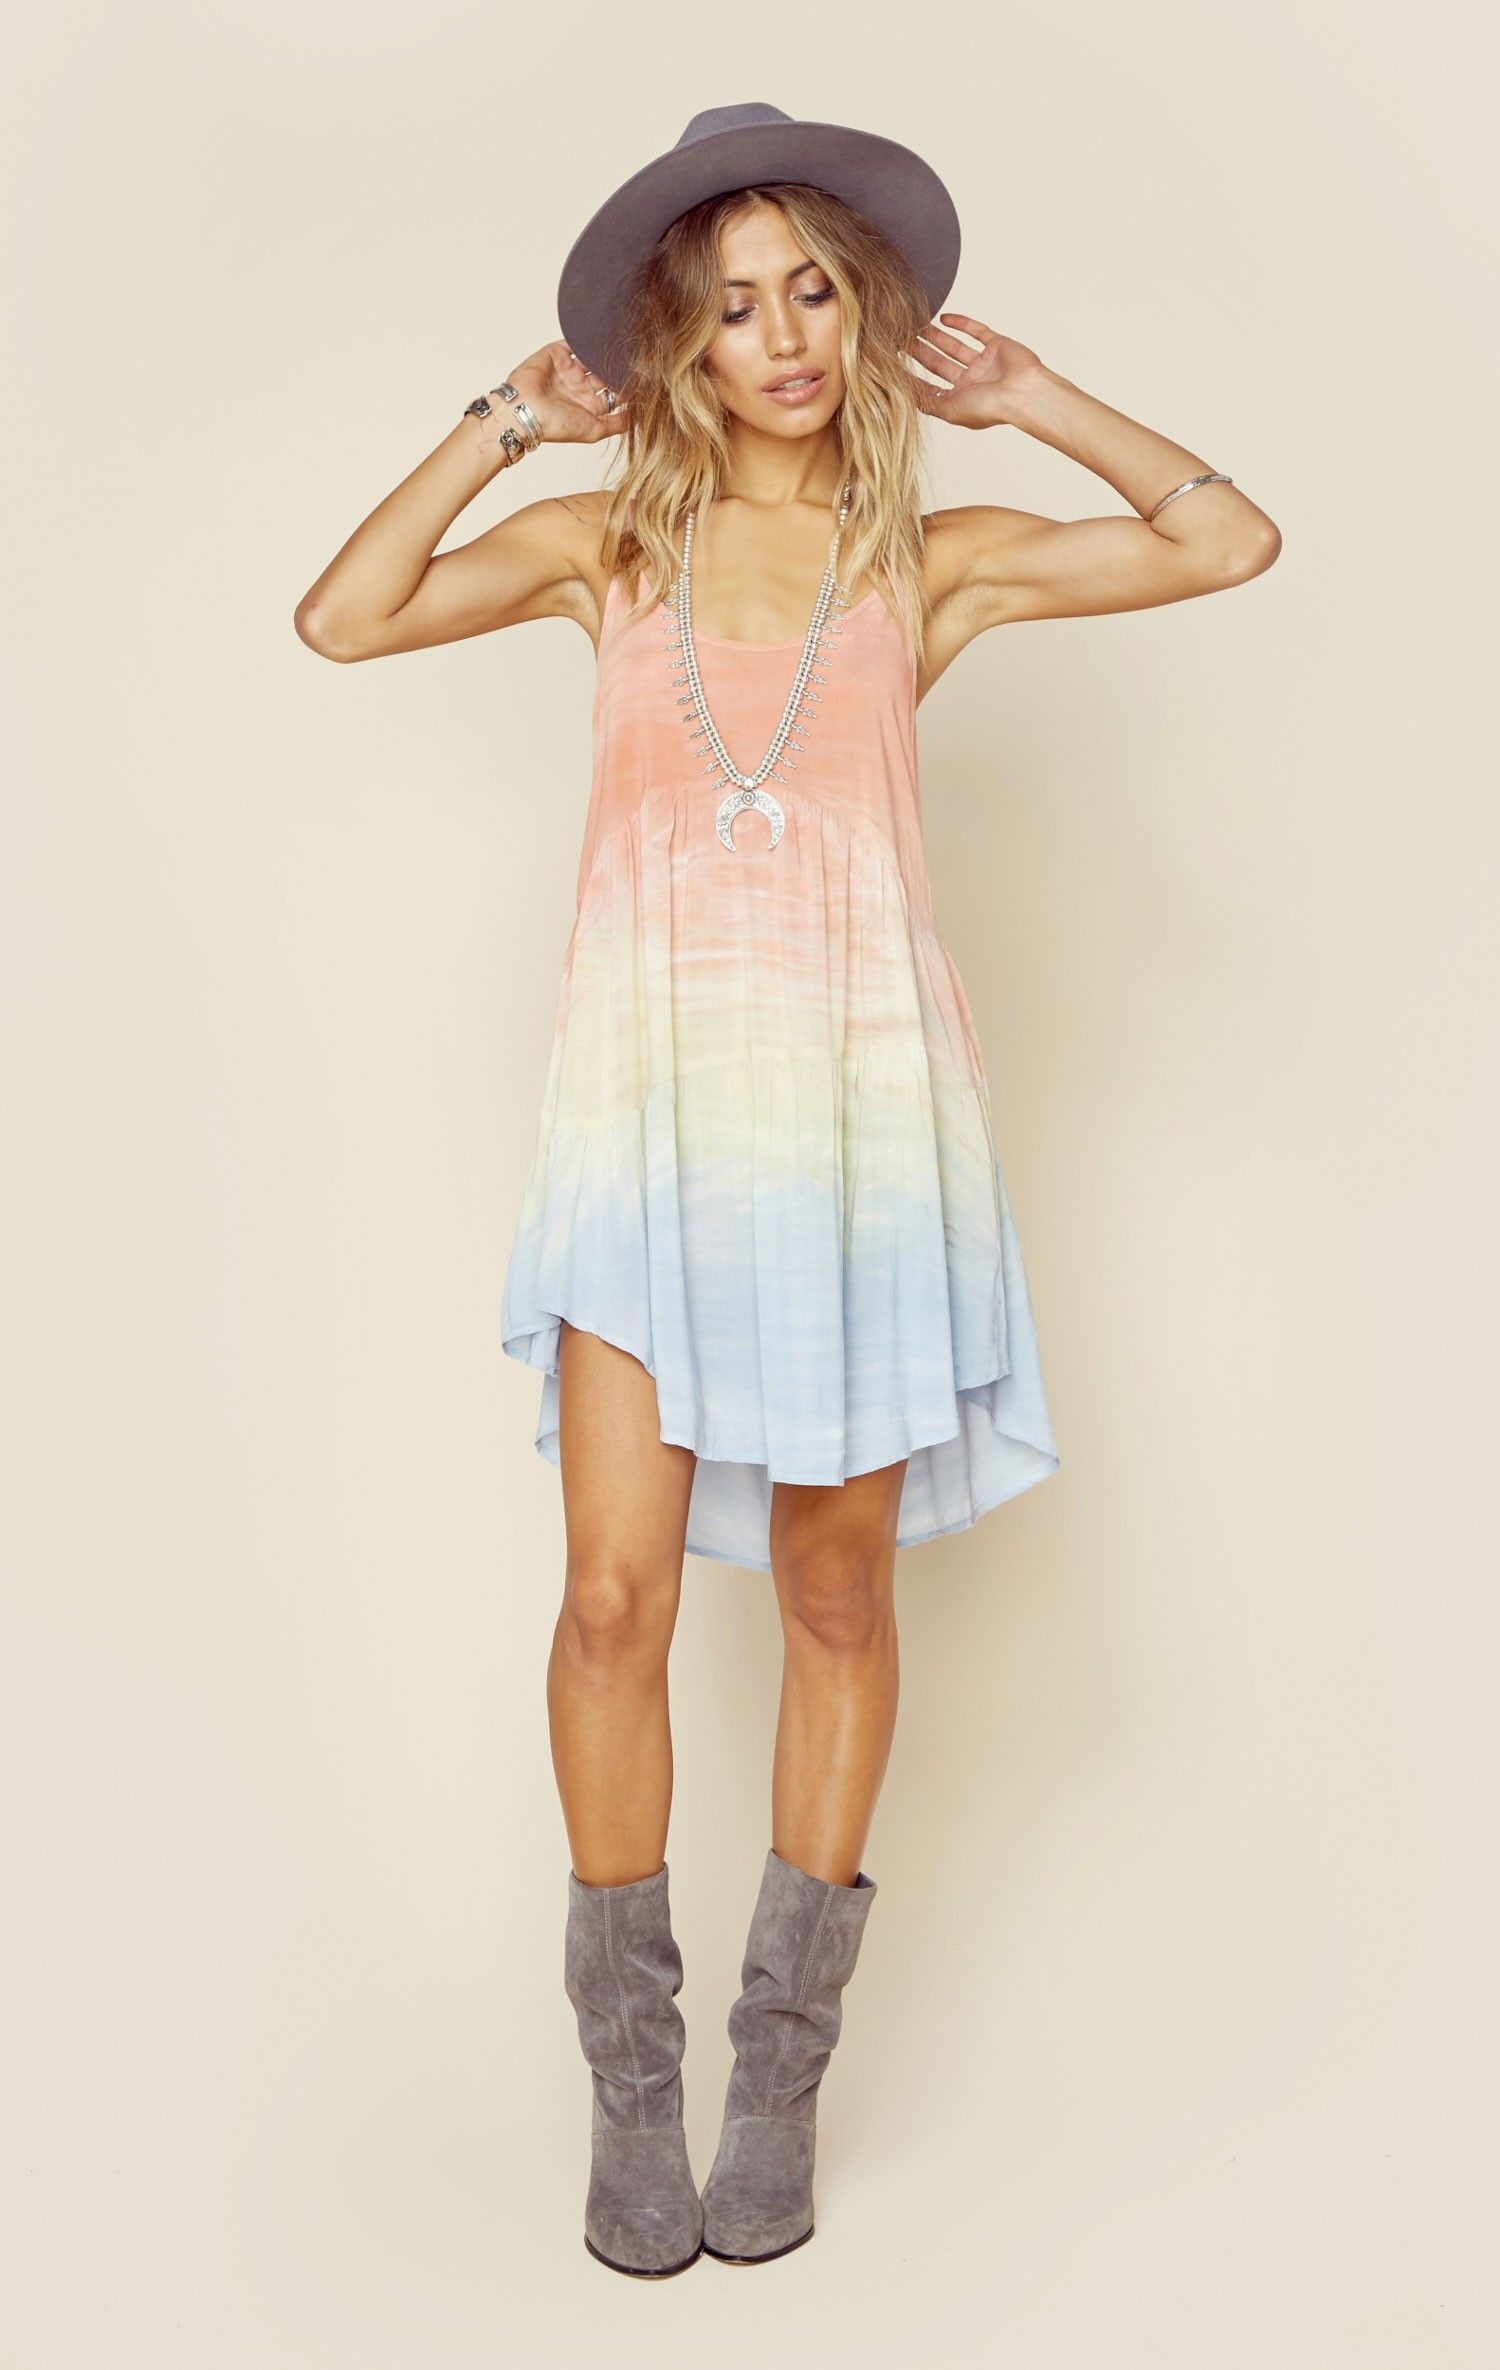 662b8b3179 The Desert Dancer Dress by Blue Life features a hand tie dyed rayon  fabrication